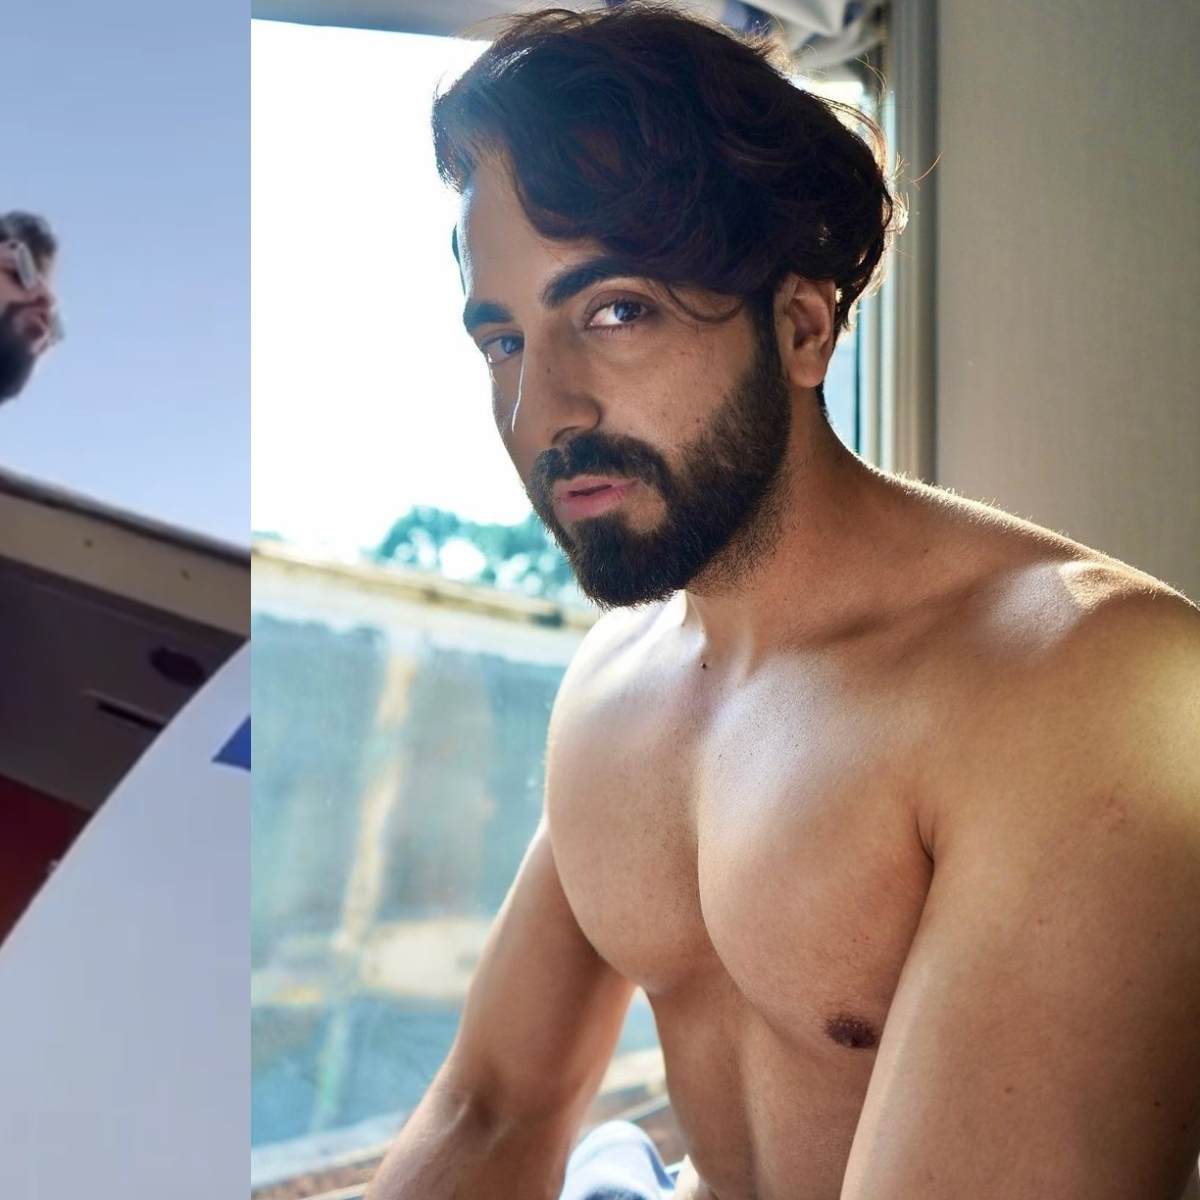 Watch: Varun Dhawan howls like a true 'Bhediya', but Ayushmann Khurrana's comment steals the thunder